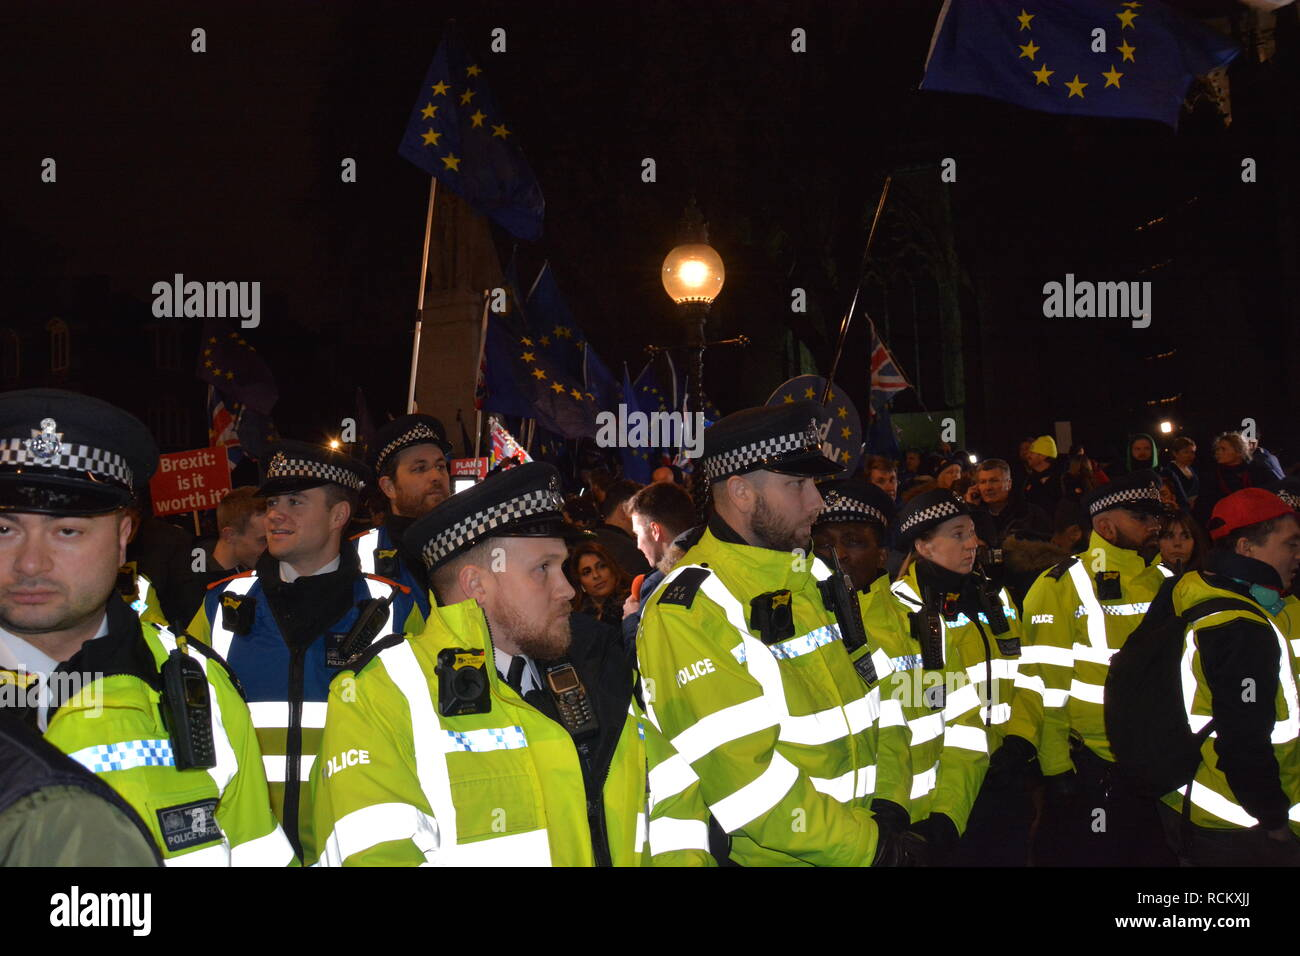 Night of the Meaningful Vote in Parliament 15th January 2019. Police keep remainders and Brexiteers apart. - Stock Image